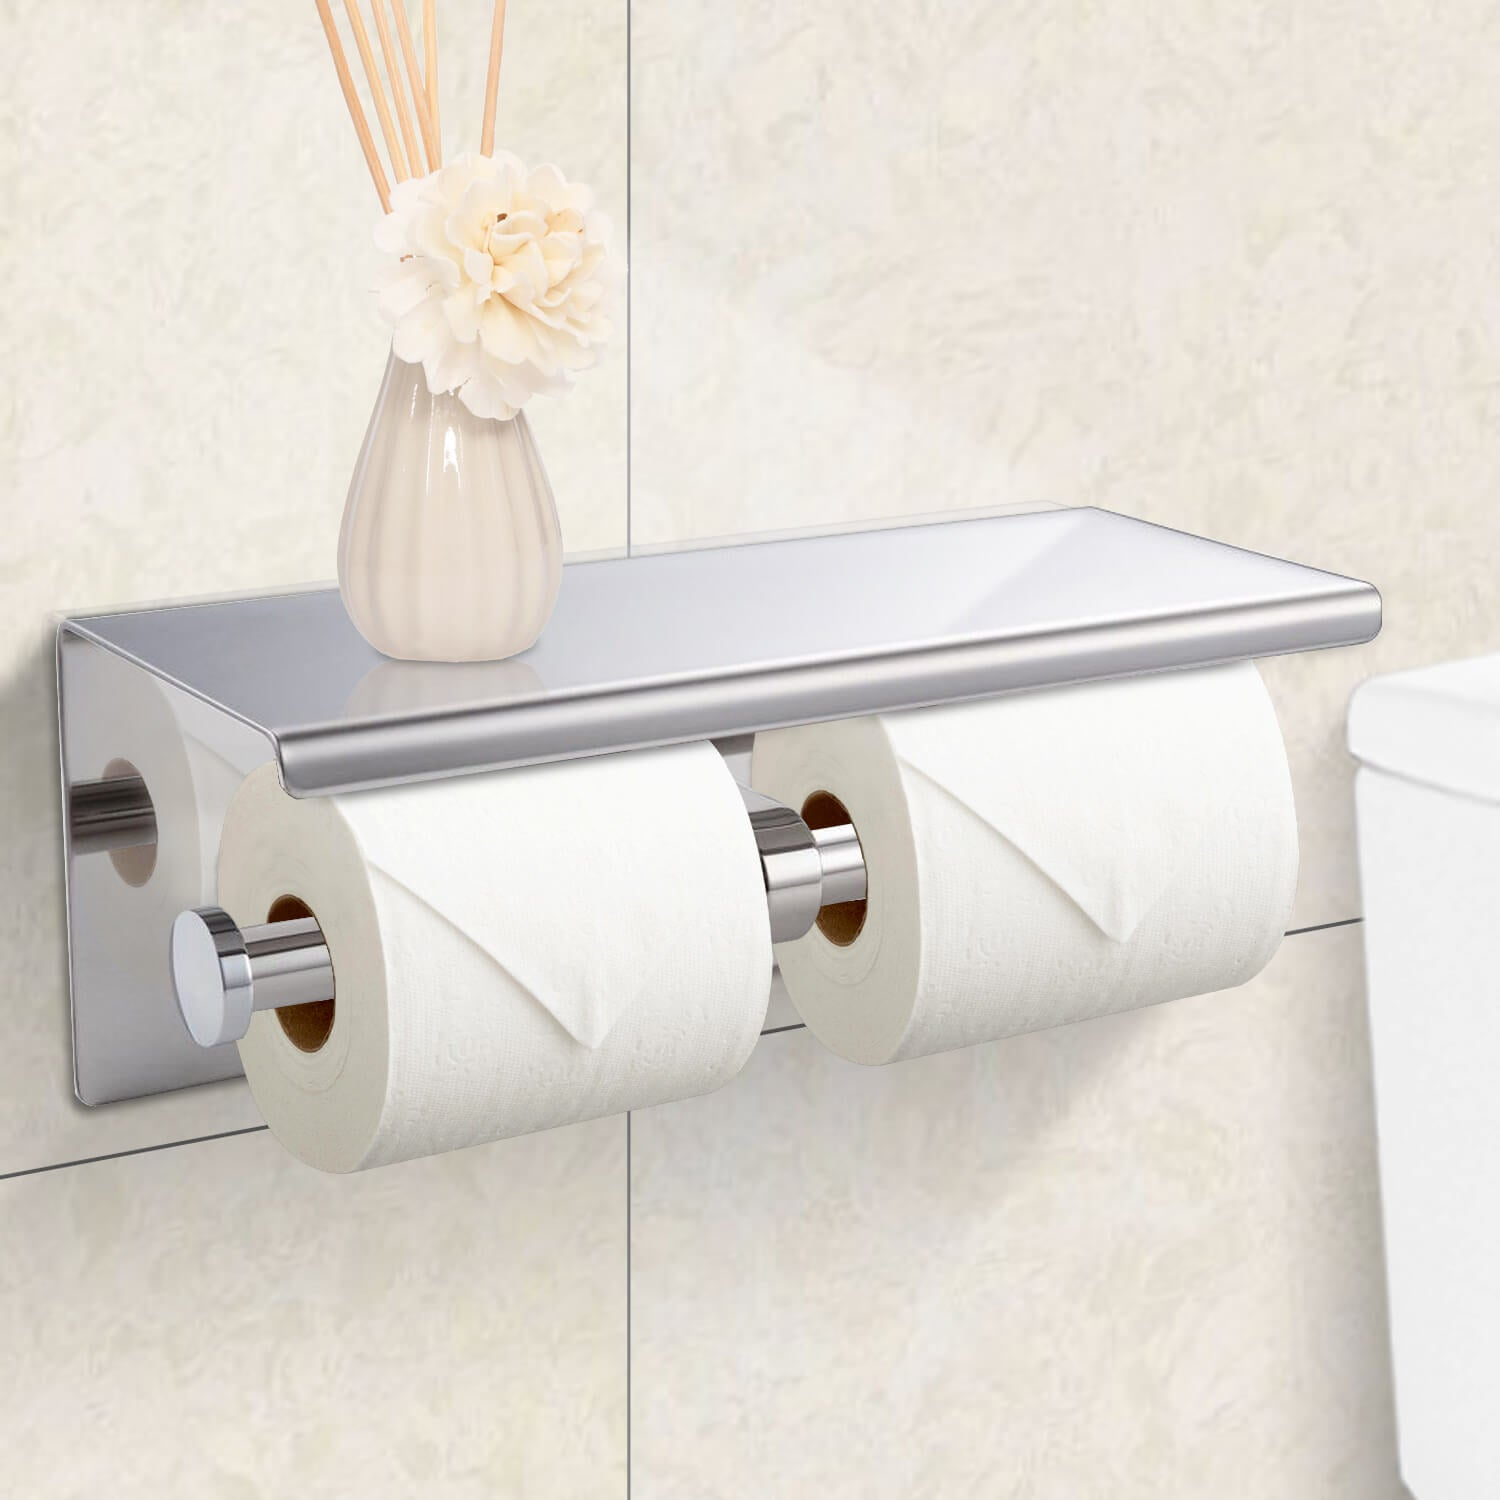 304 Stainless Steel Double Toilet Paper Rool Holder Strong Hook Bathroom